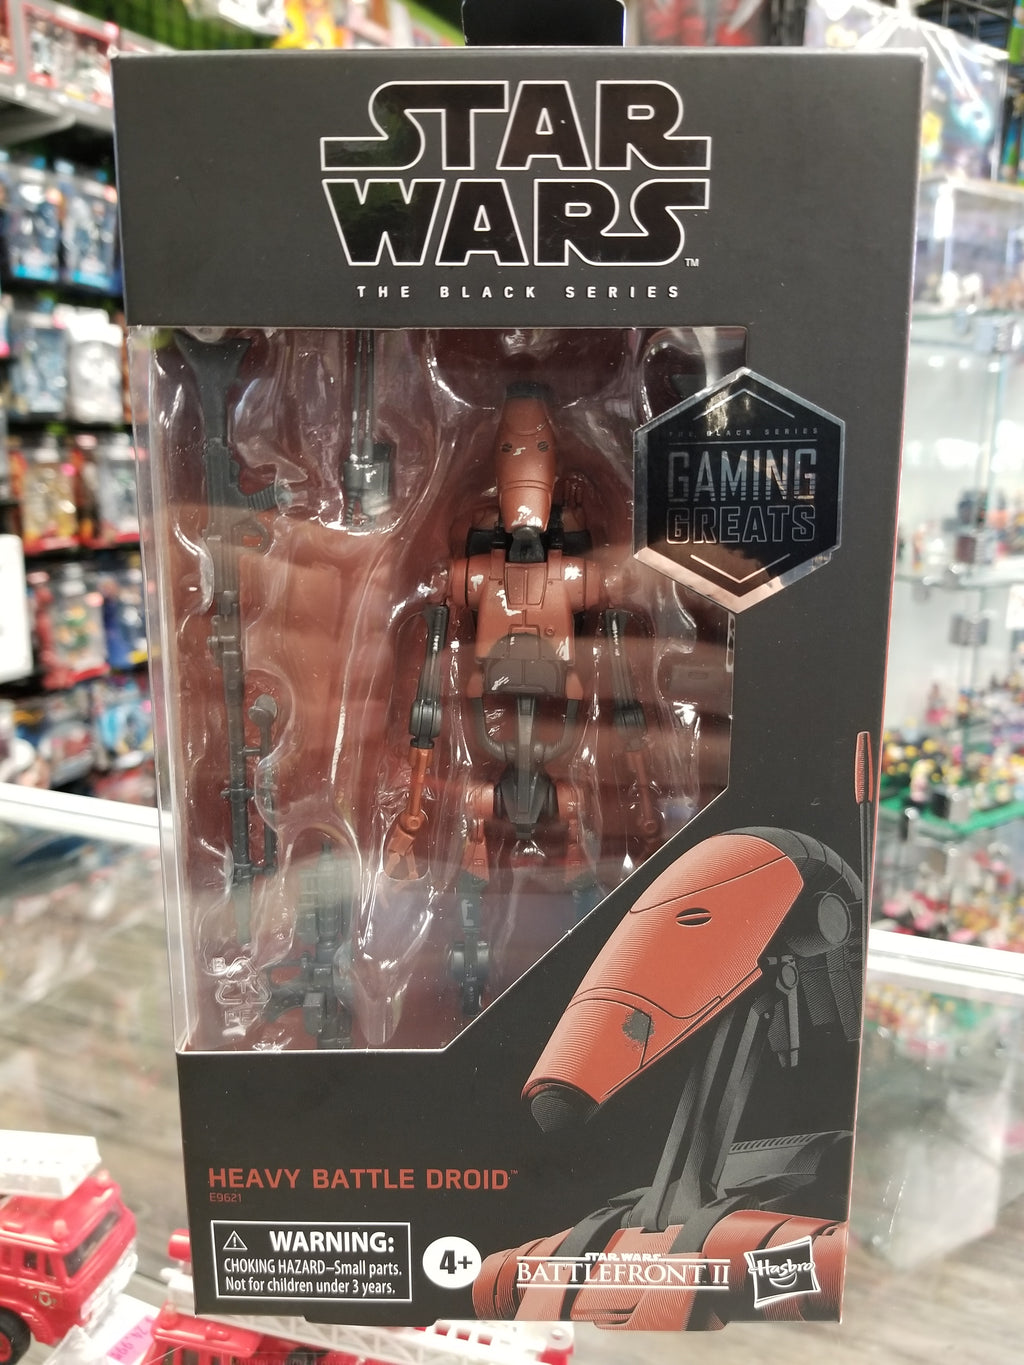 Hasbro Star Wars The Black Series Heavy Battle Droid Gaming Greats